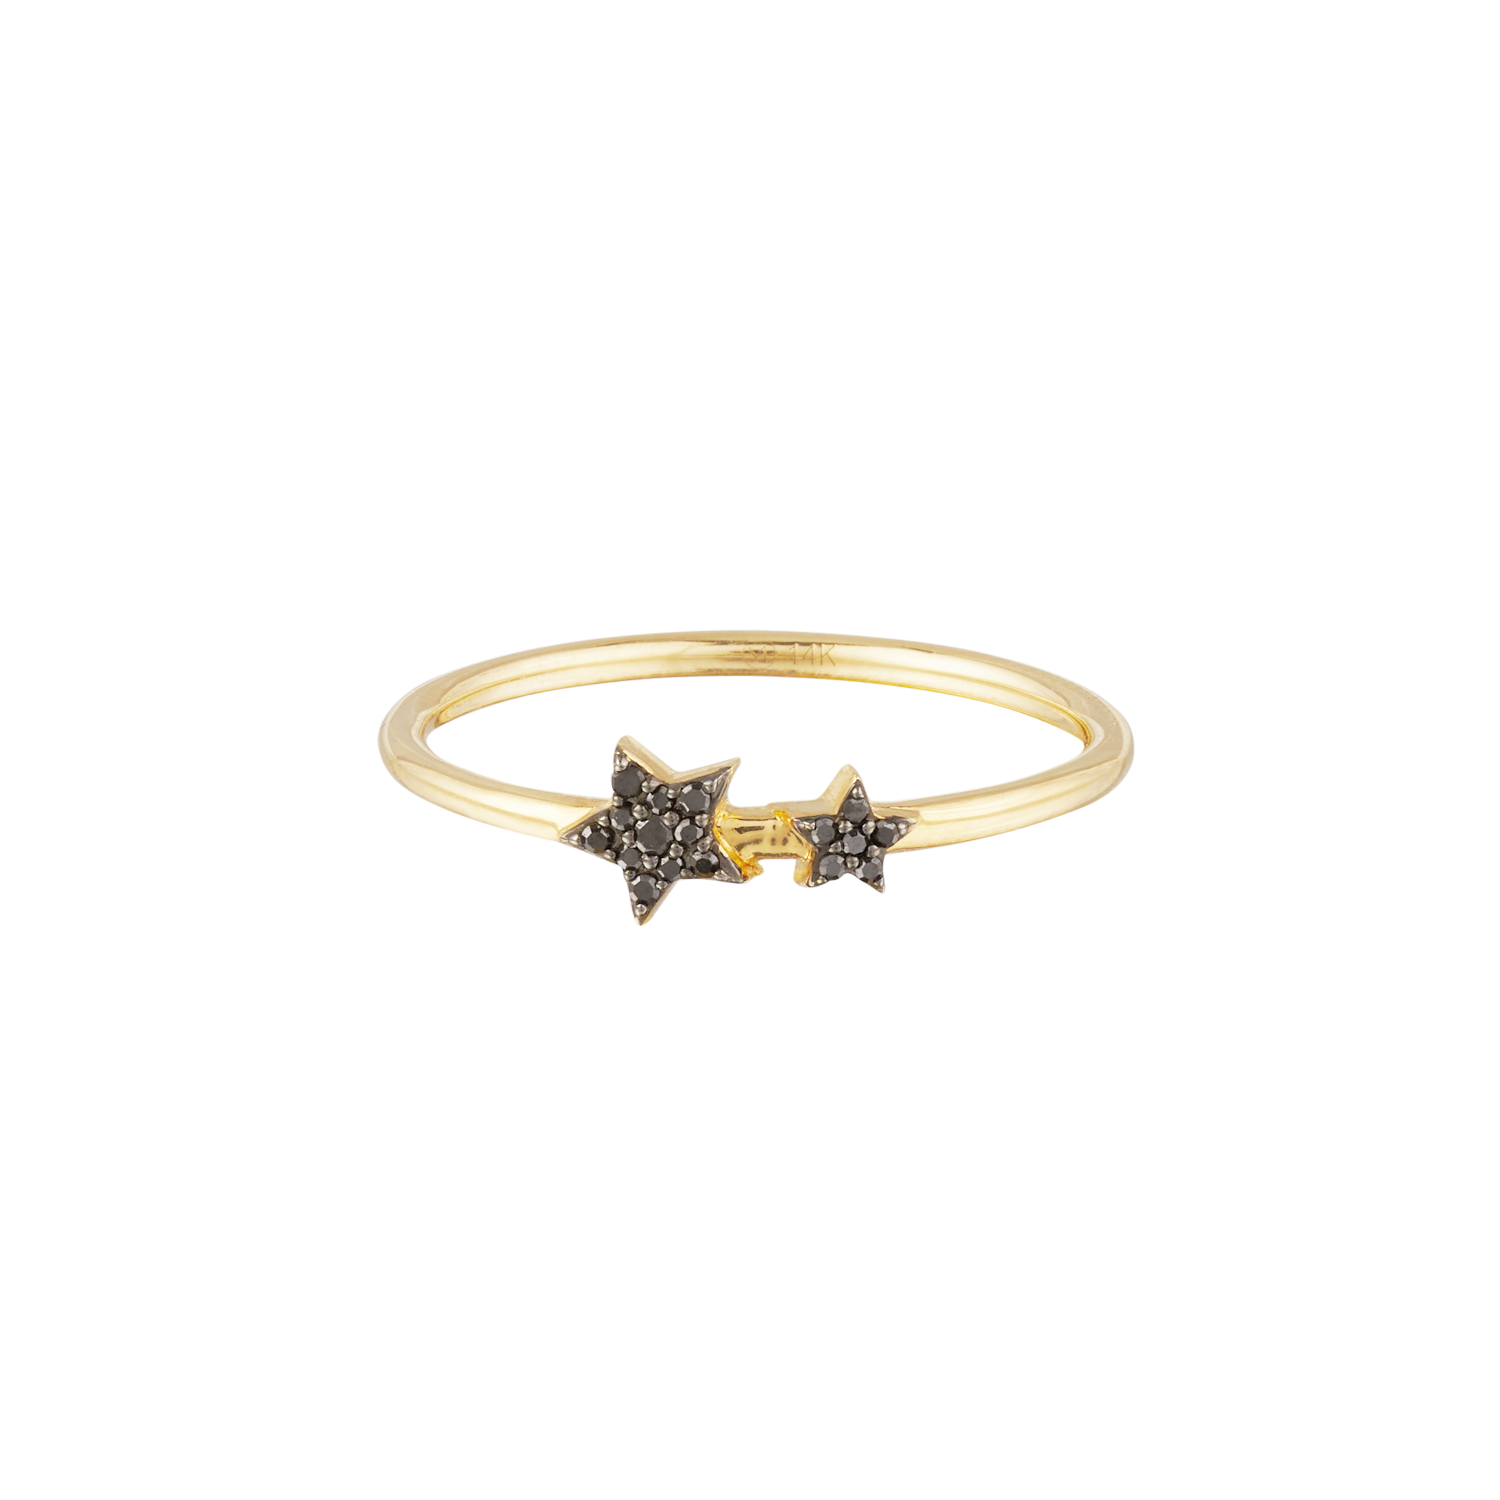 a thin gold band ring with the two black stars on it